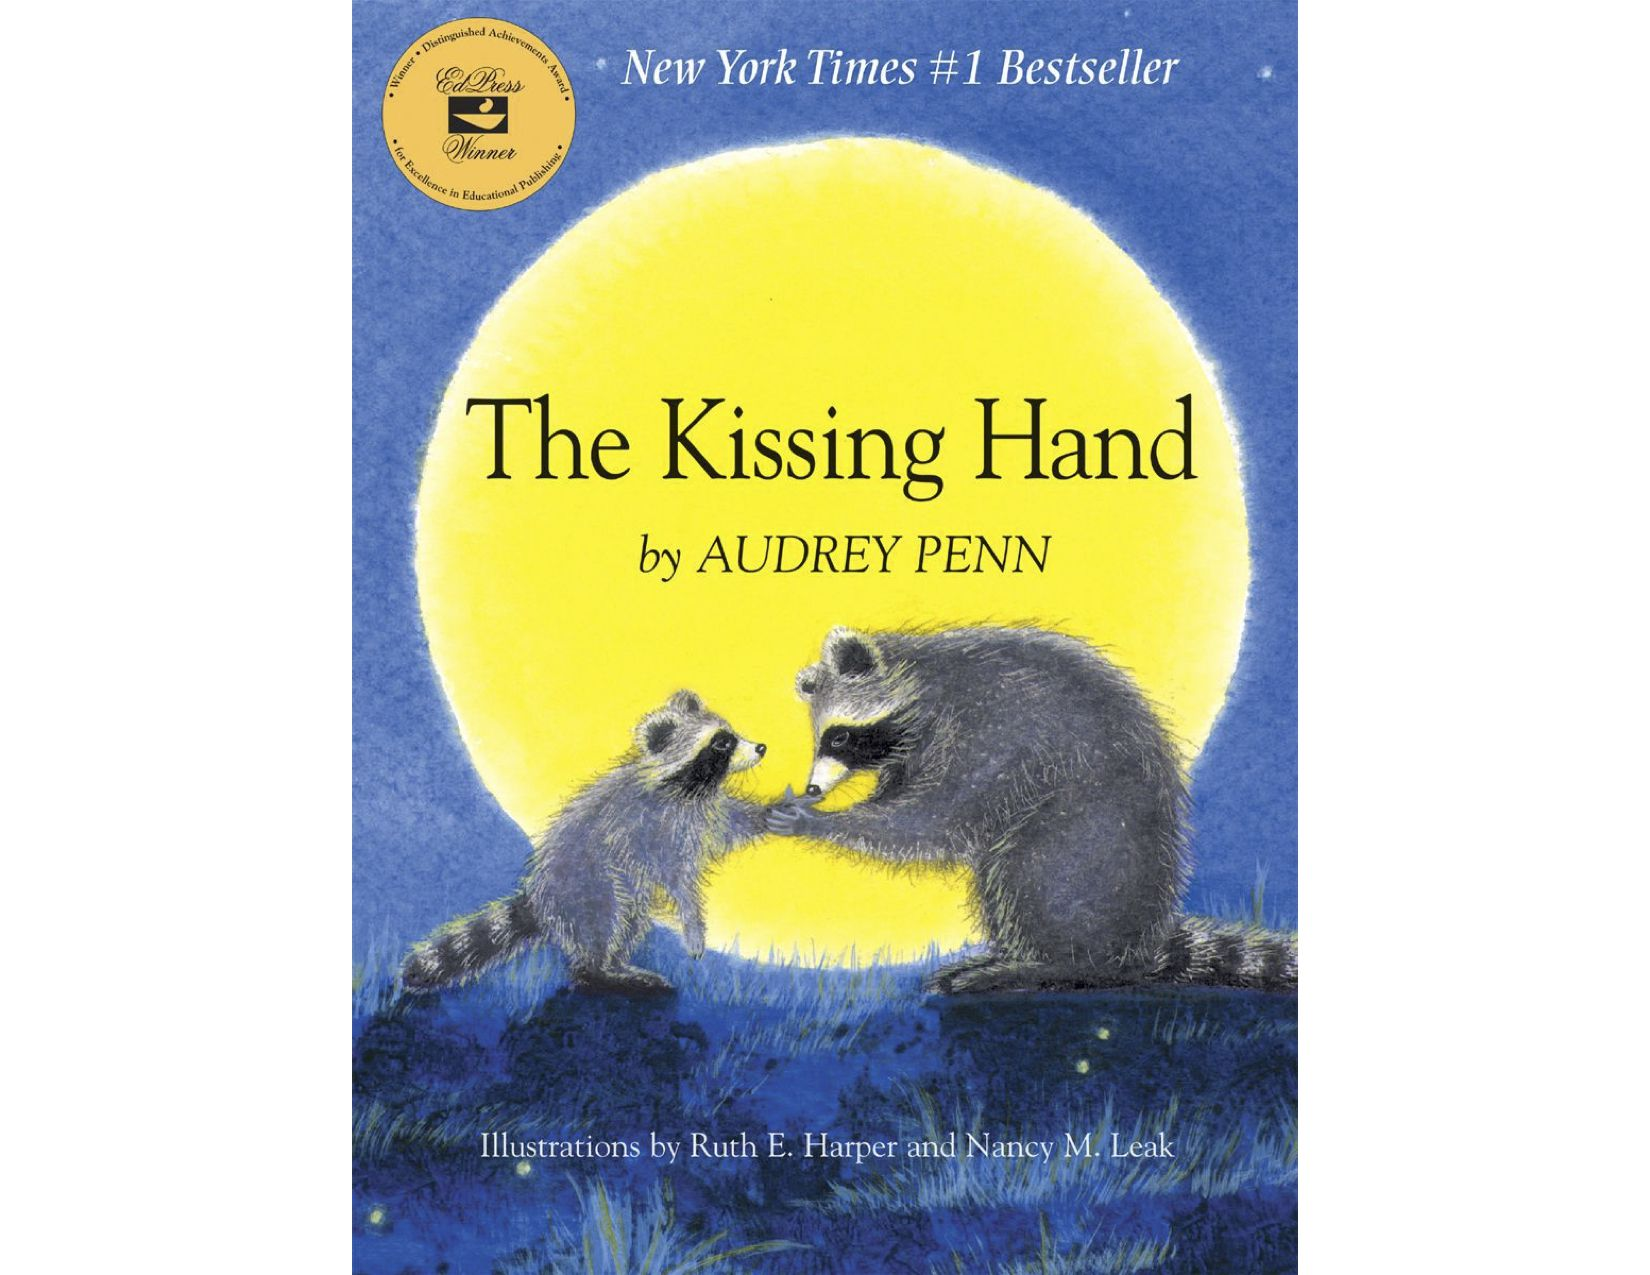 A Book Review Of The Kissing Hand By Audrey Penn